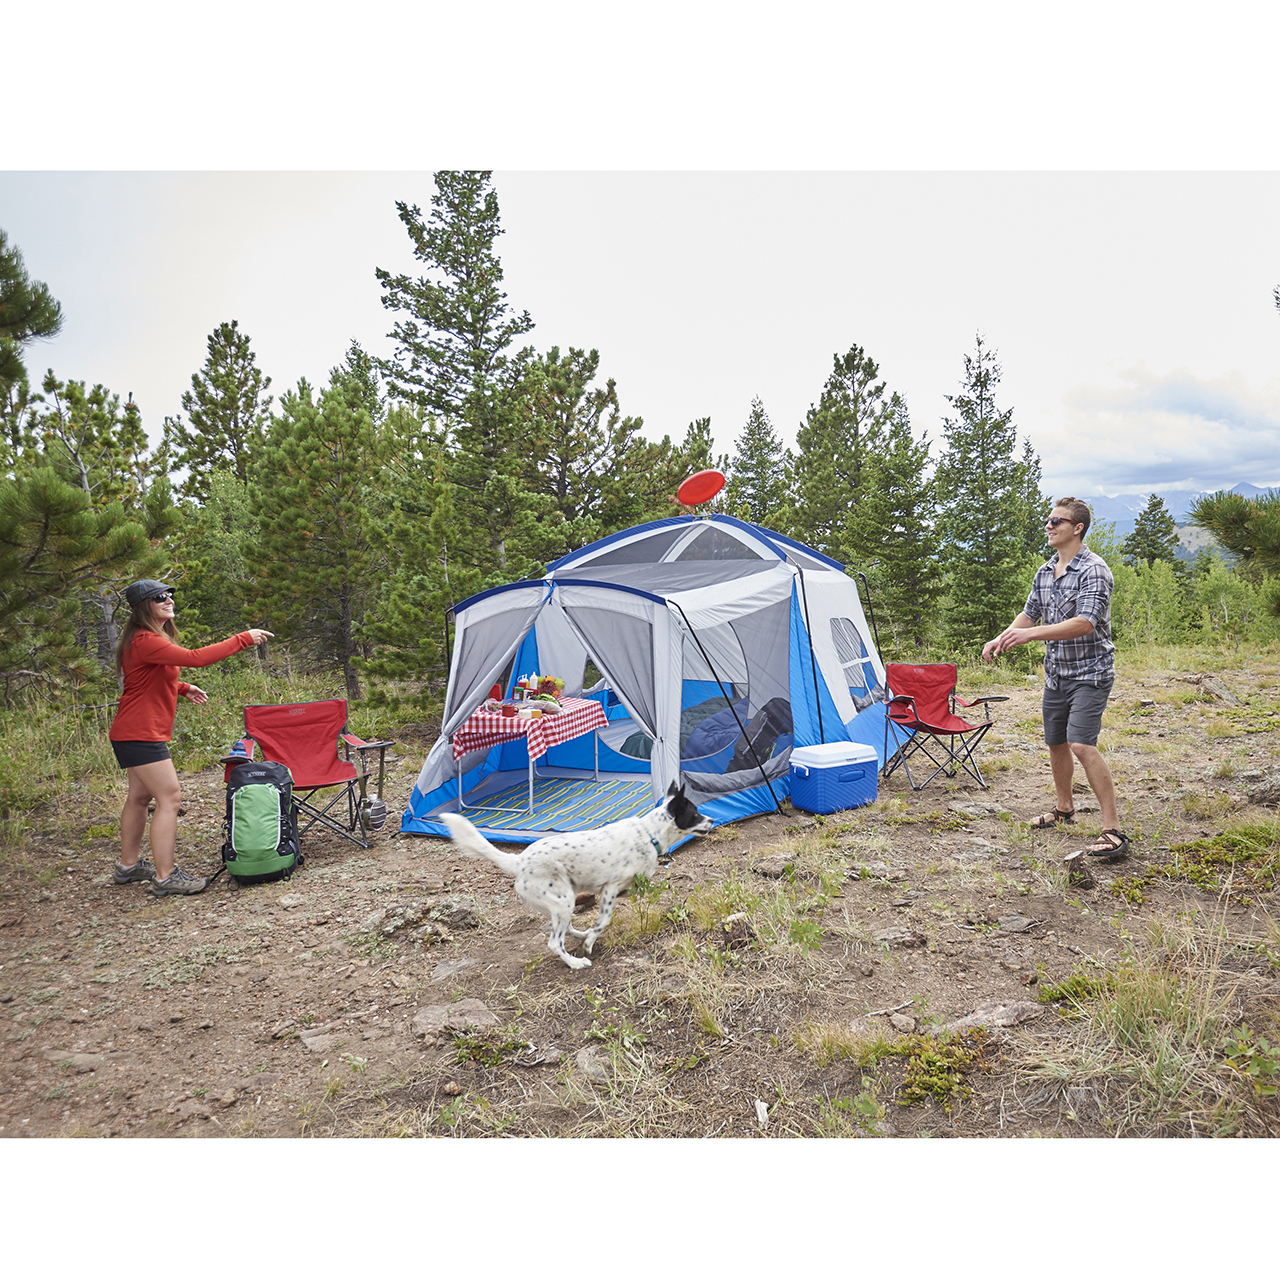 Man and woman with their dog playing Frisbee outside of a Wenzel tent setup without the rain fly on with Wenzel chairs, coolers, and backpacks outside